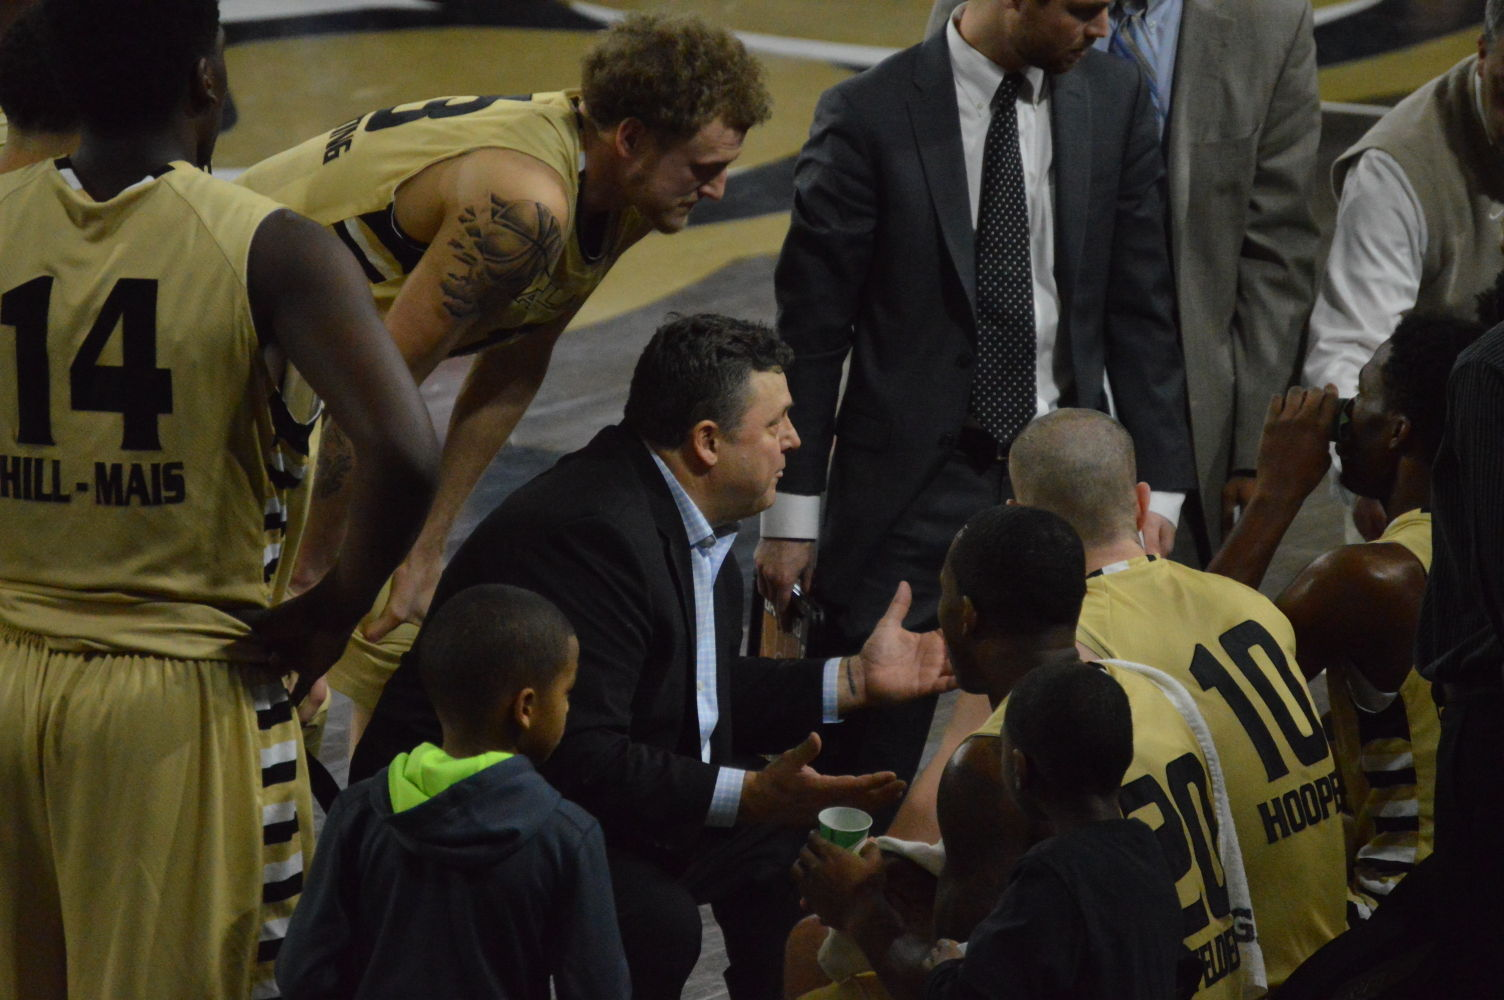 Head coach Greg Kampe talks to the team during a timeout in the first half of the game against Wright State.